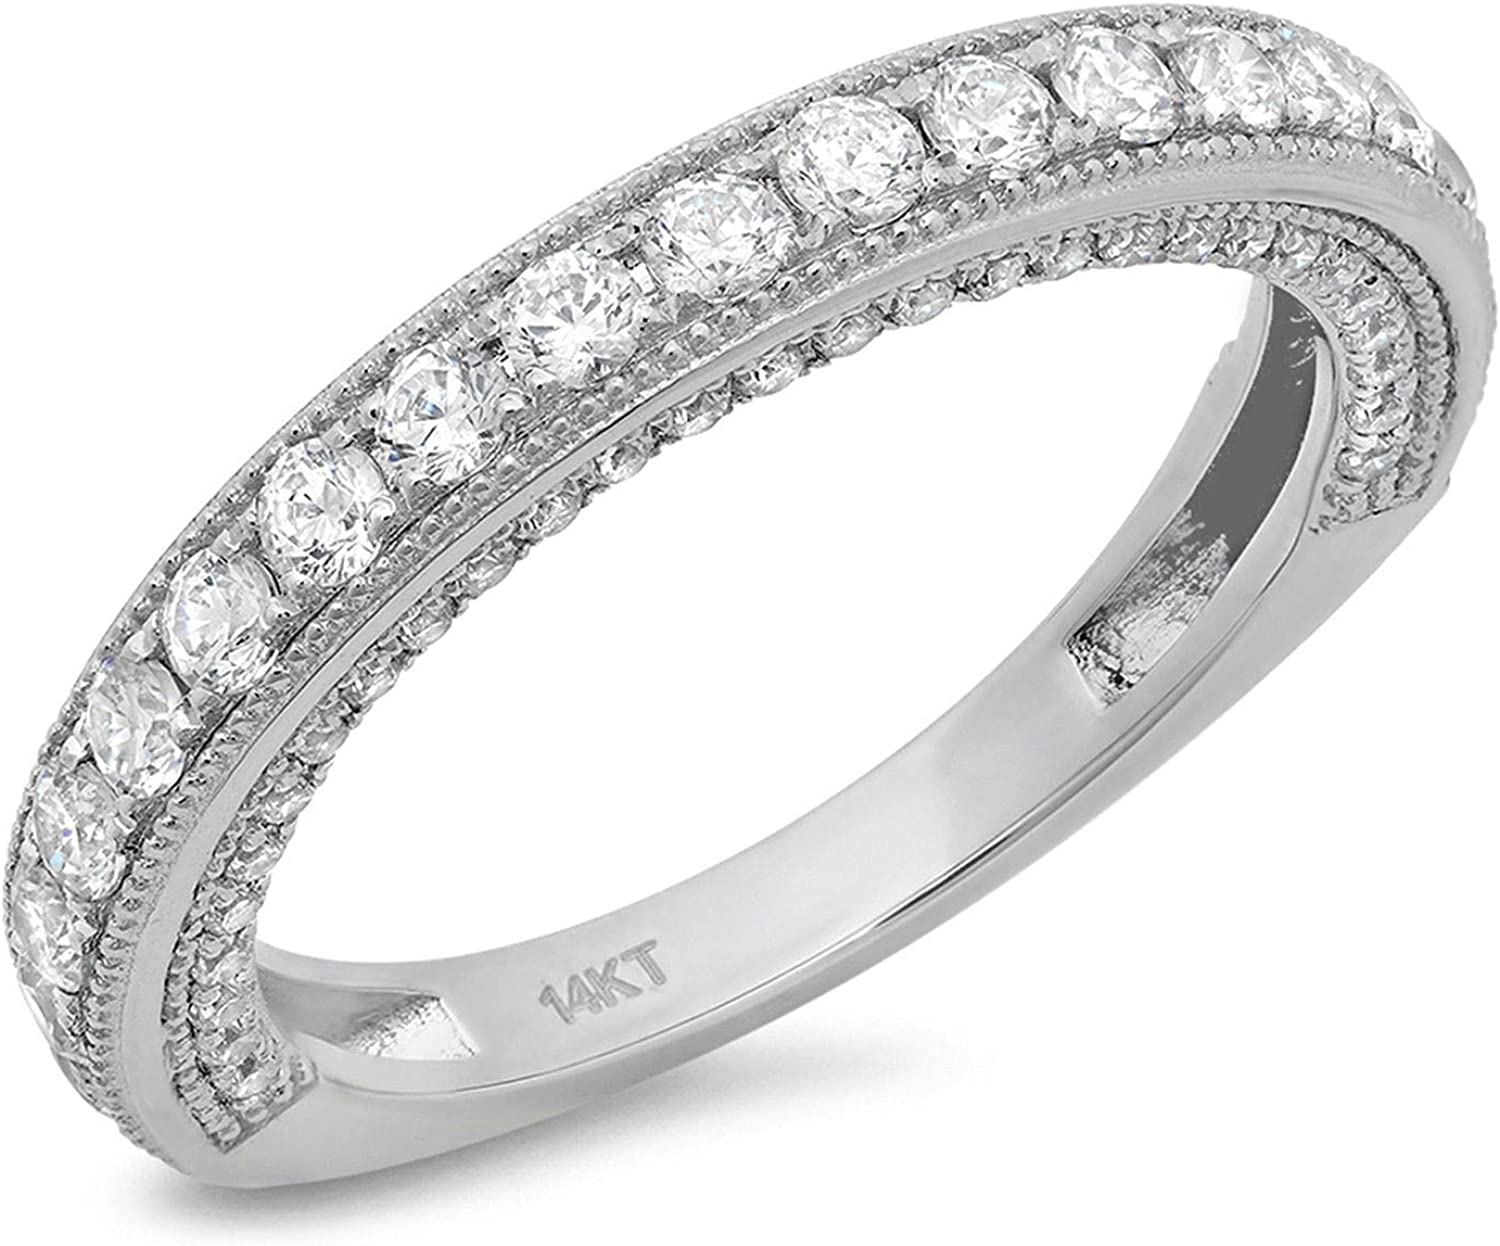 1.2 Ct Round Cut Pave Set Promise Wedding Bridal Eternity Engagement Anniversary Band Ring 14K White Gold, Clara Pucci